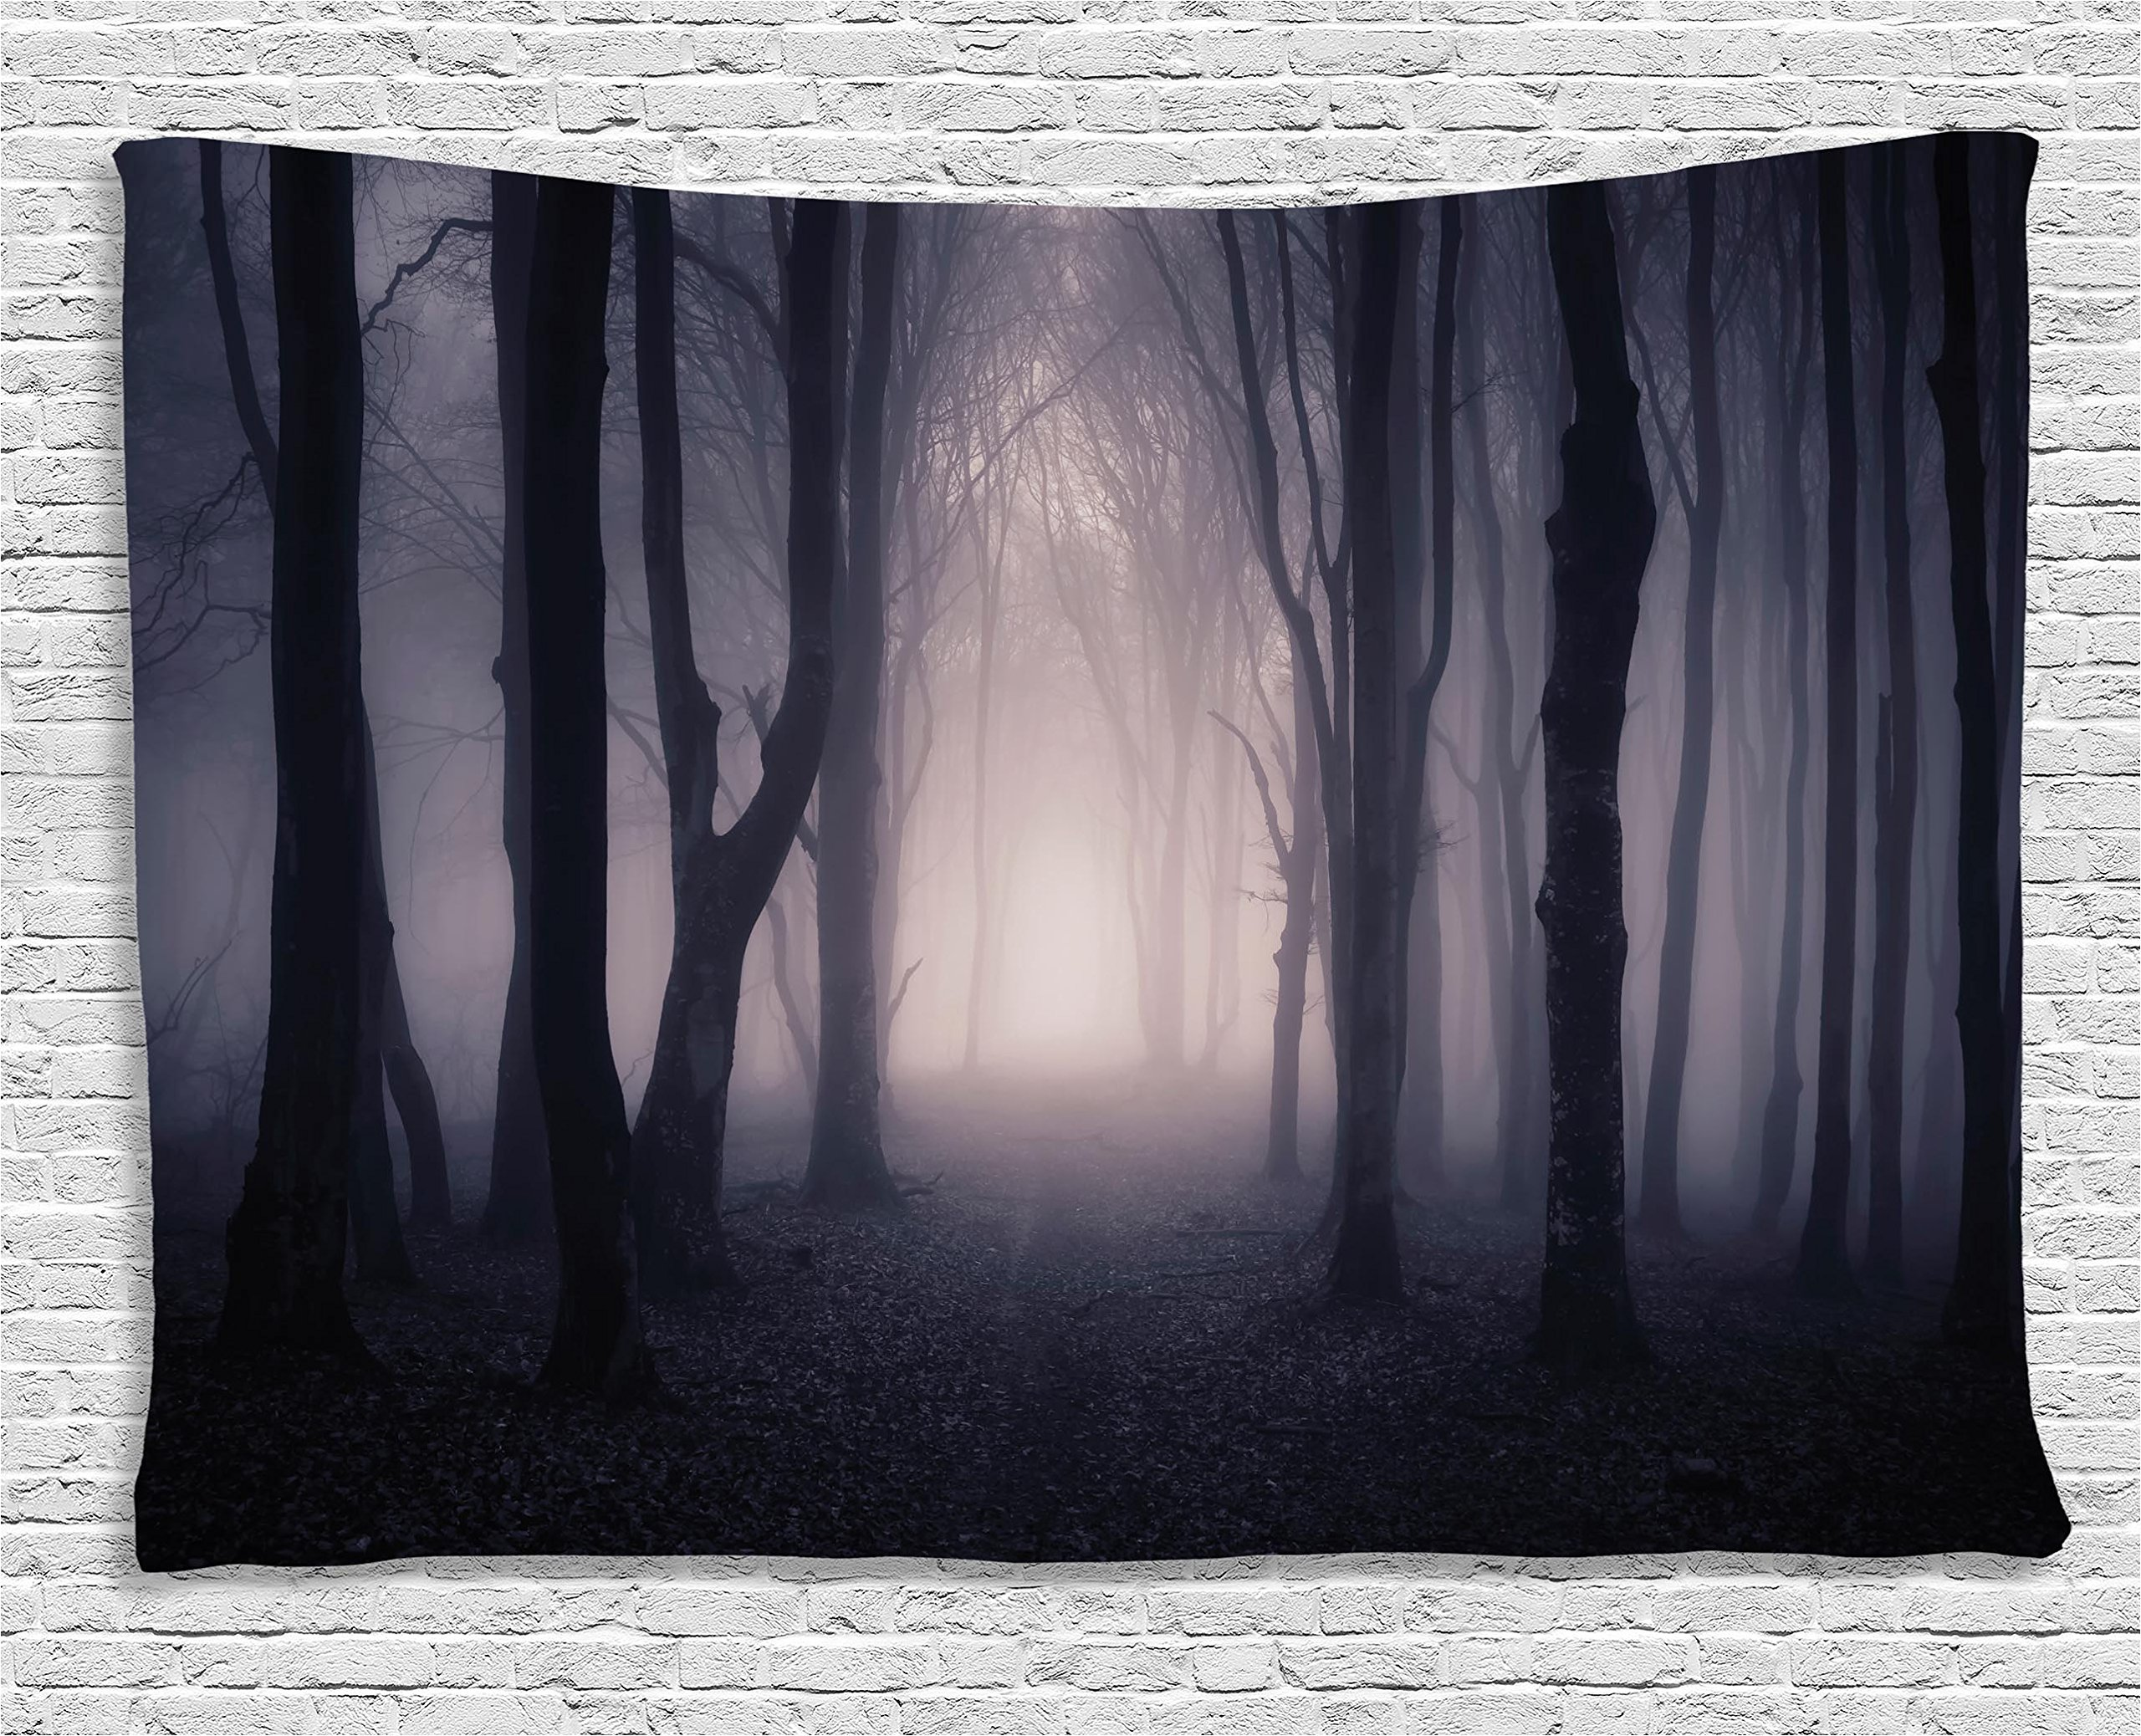 Ambesonne Dark Tapestry Forest Farm House Decor, Path Through Deep Forest with Fog Creepy Twisted Branches Trees Picture, Bedroom Living Room Dorm Wall Hanging, 80 X 60 inches, Purple Dark Grey